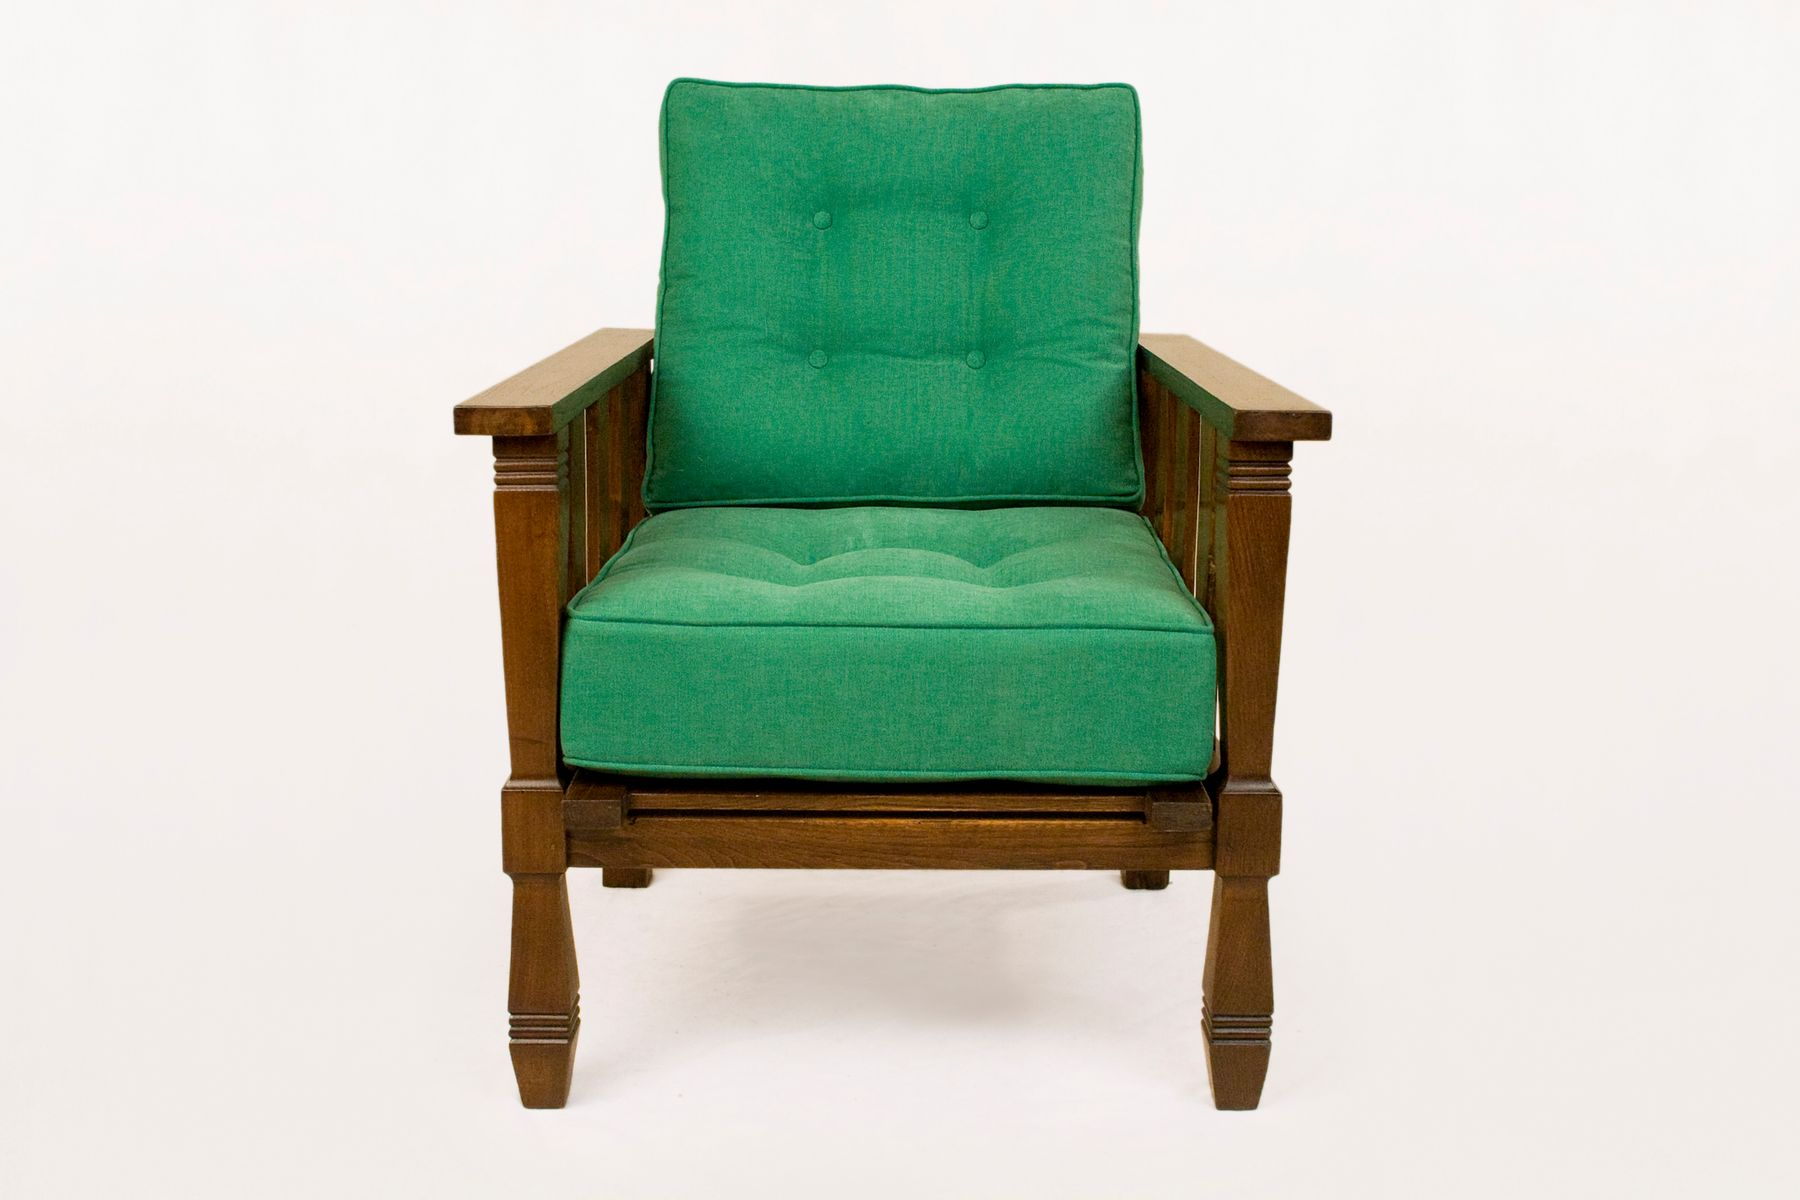 Vintage Wood And Green Arm Chairs By William Morris, 1920s, Set Of 2